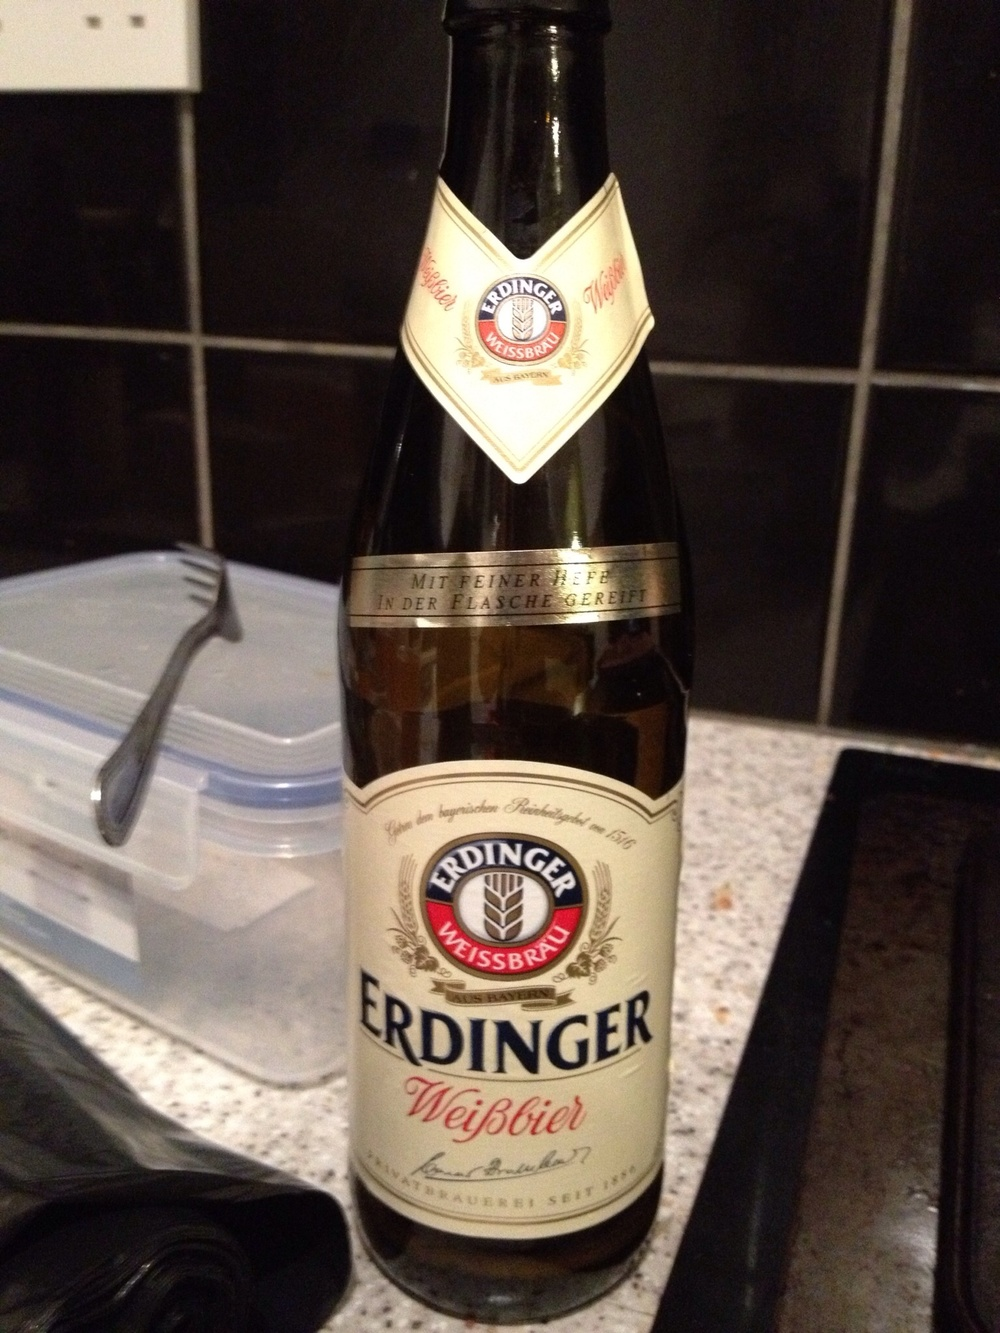 One German Weißbier